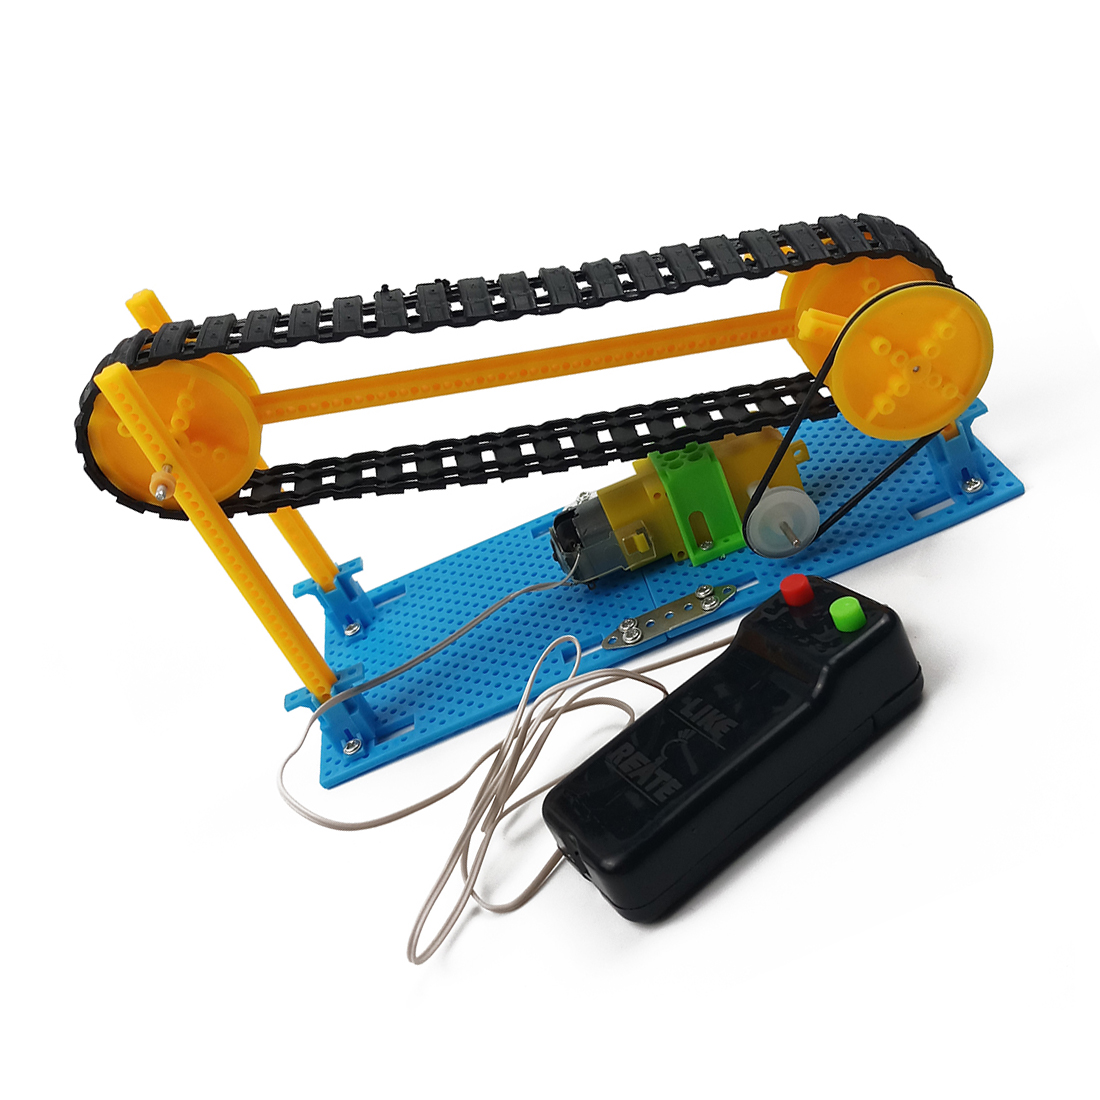 DIY Wire Control Wooden Electric Conveyor Transporter Belt Model Steam Toy Physics Science Education Toy Assembled Materials Kit